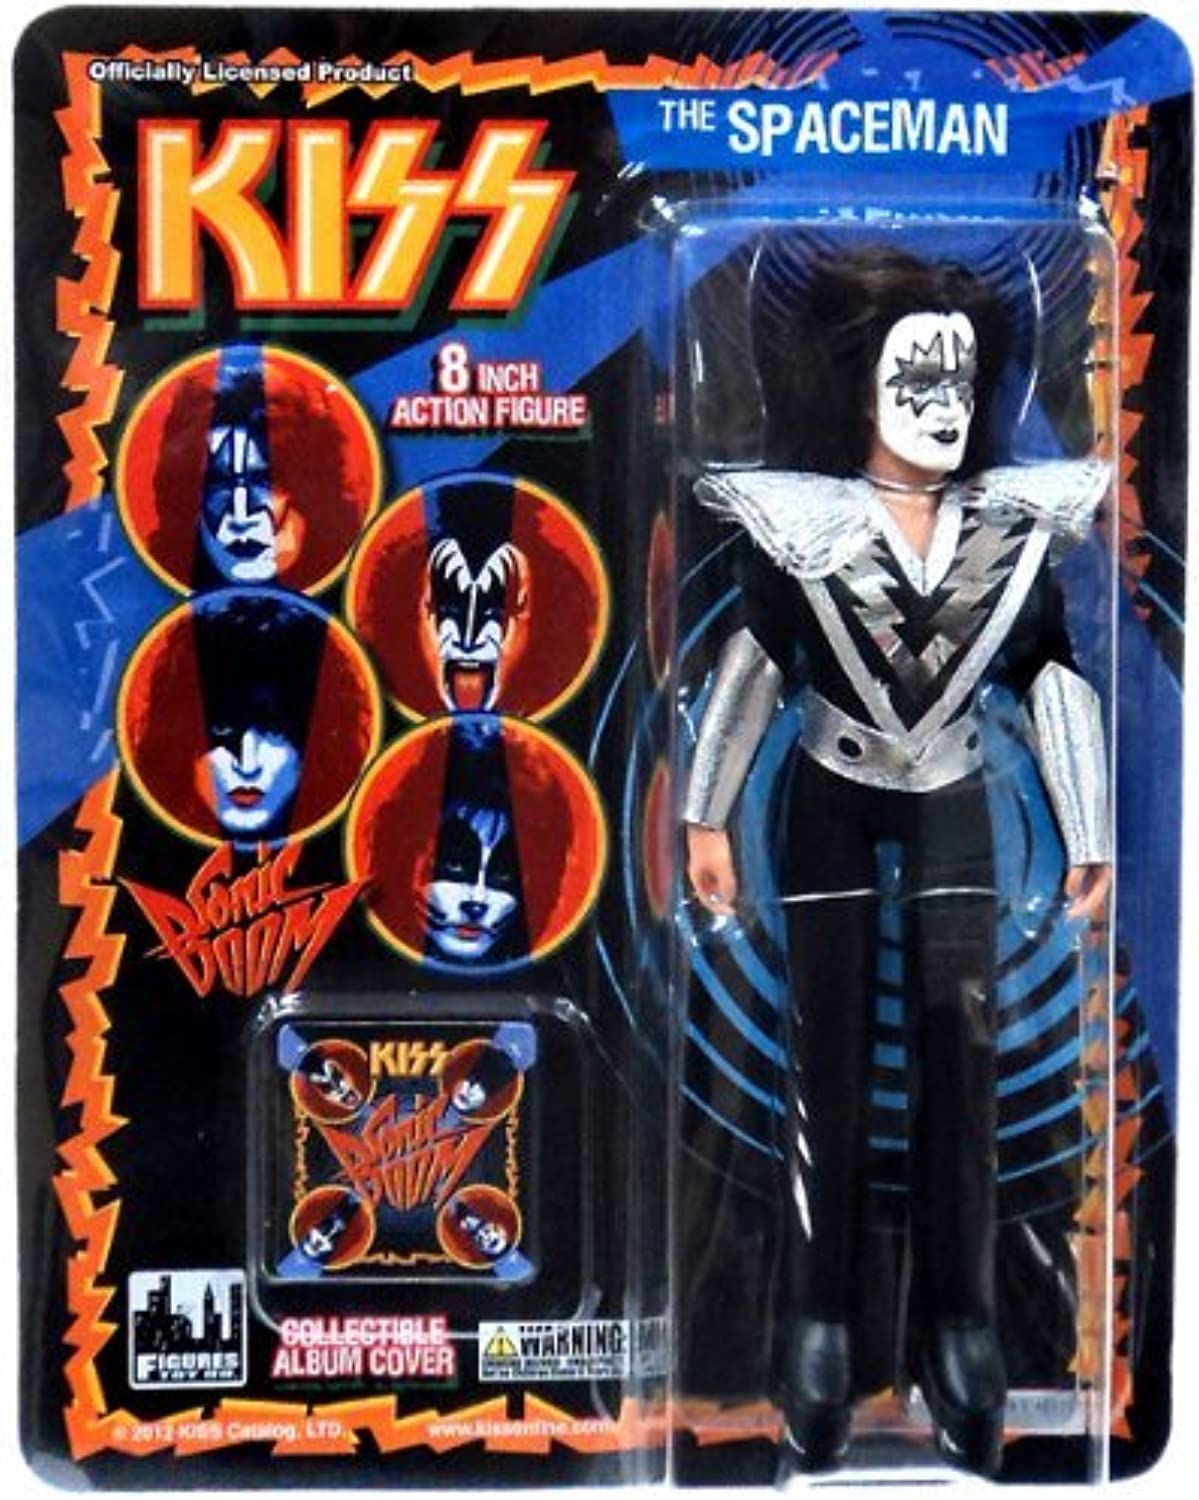 Kiss Series 3 Sonic Boom - The Spaceman Ace Frehley 22cm Figur